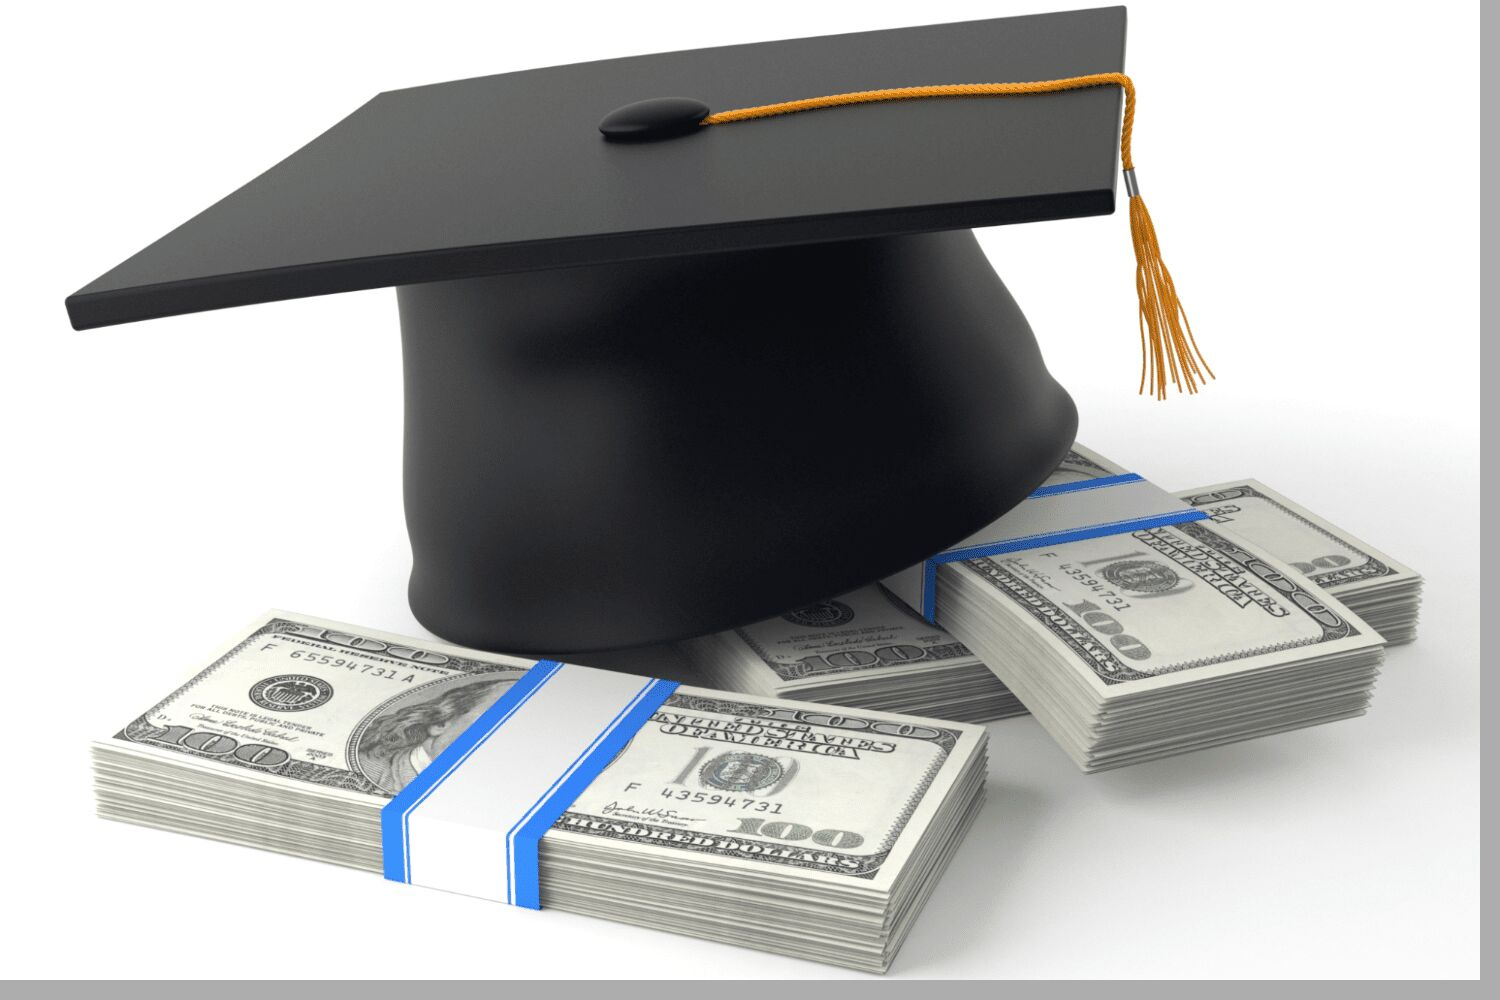 FEATURED SCHOLARSHIPS, INTERNSHIPS AND ONLINE COURSES